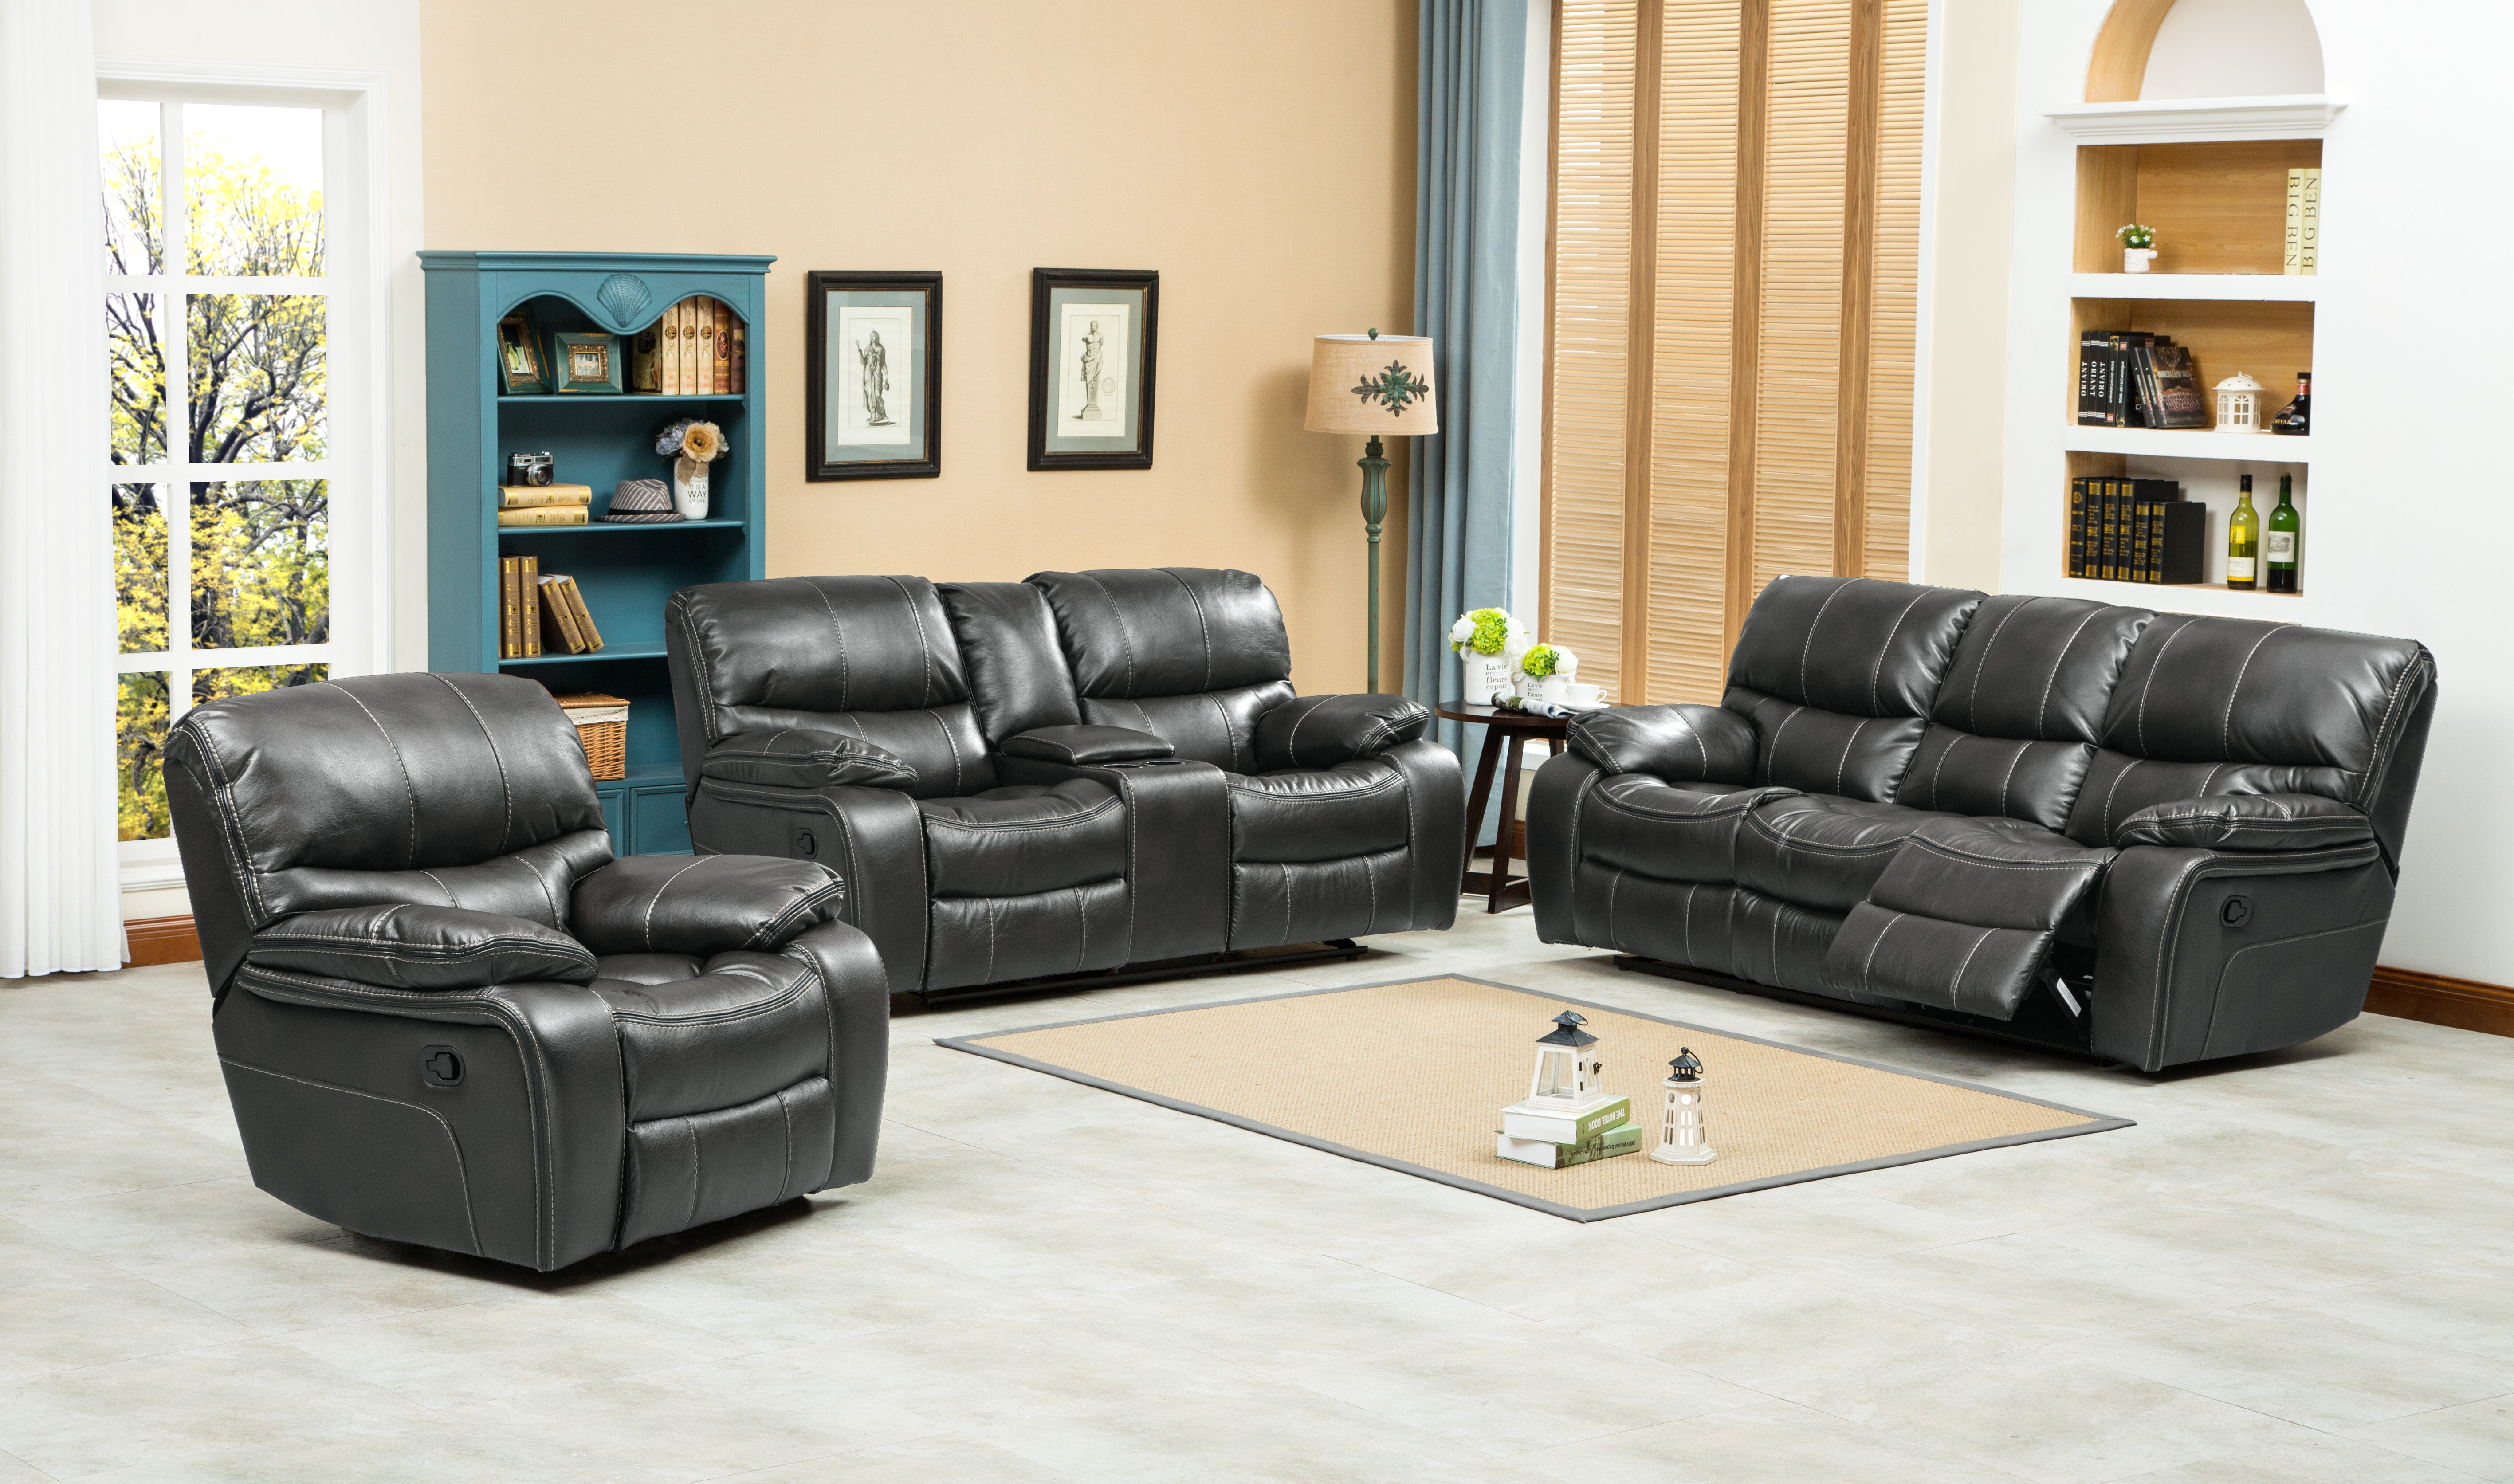 Roundhill Furniture Ewa Reclining 3 Piece Leather Living Room Set Wayfair